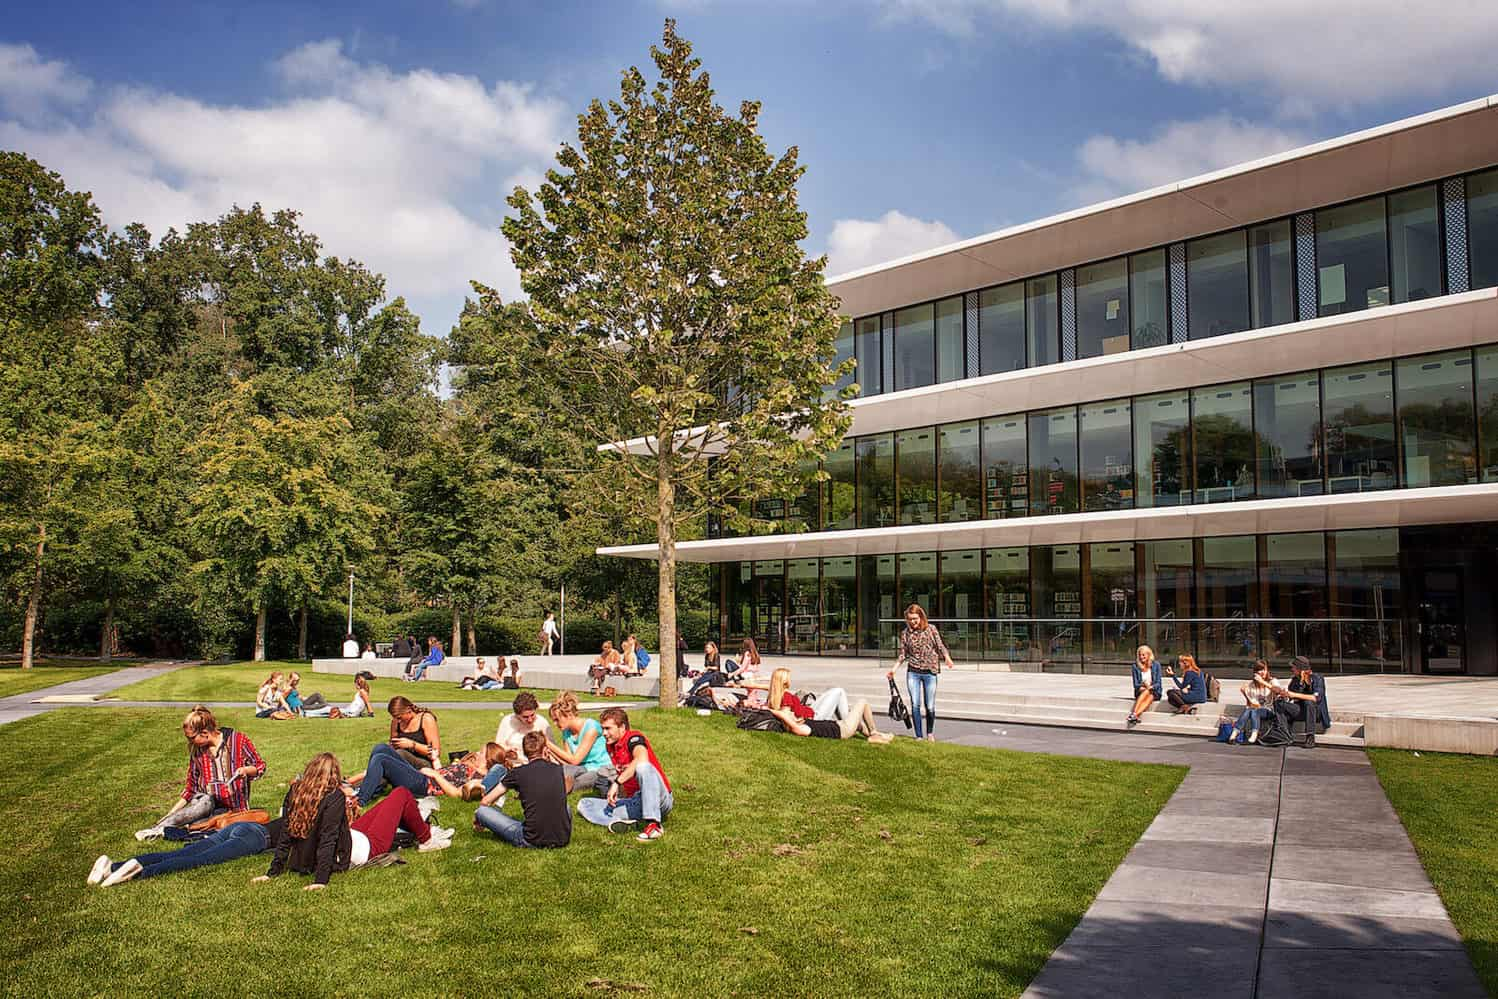 Radboud University Campus